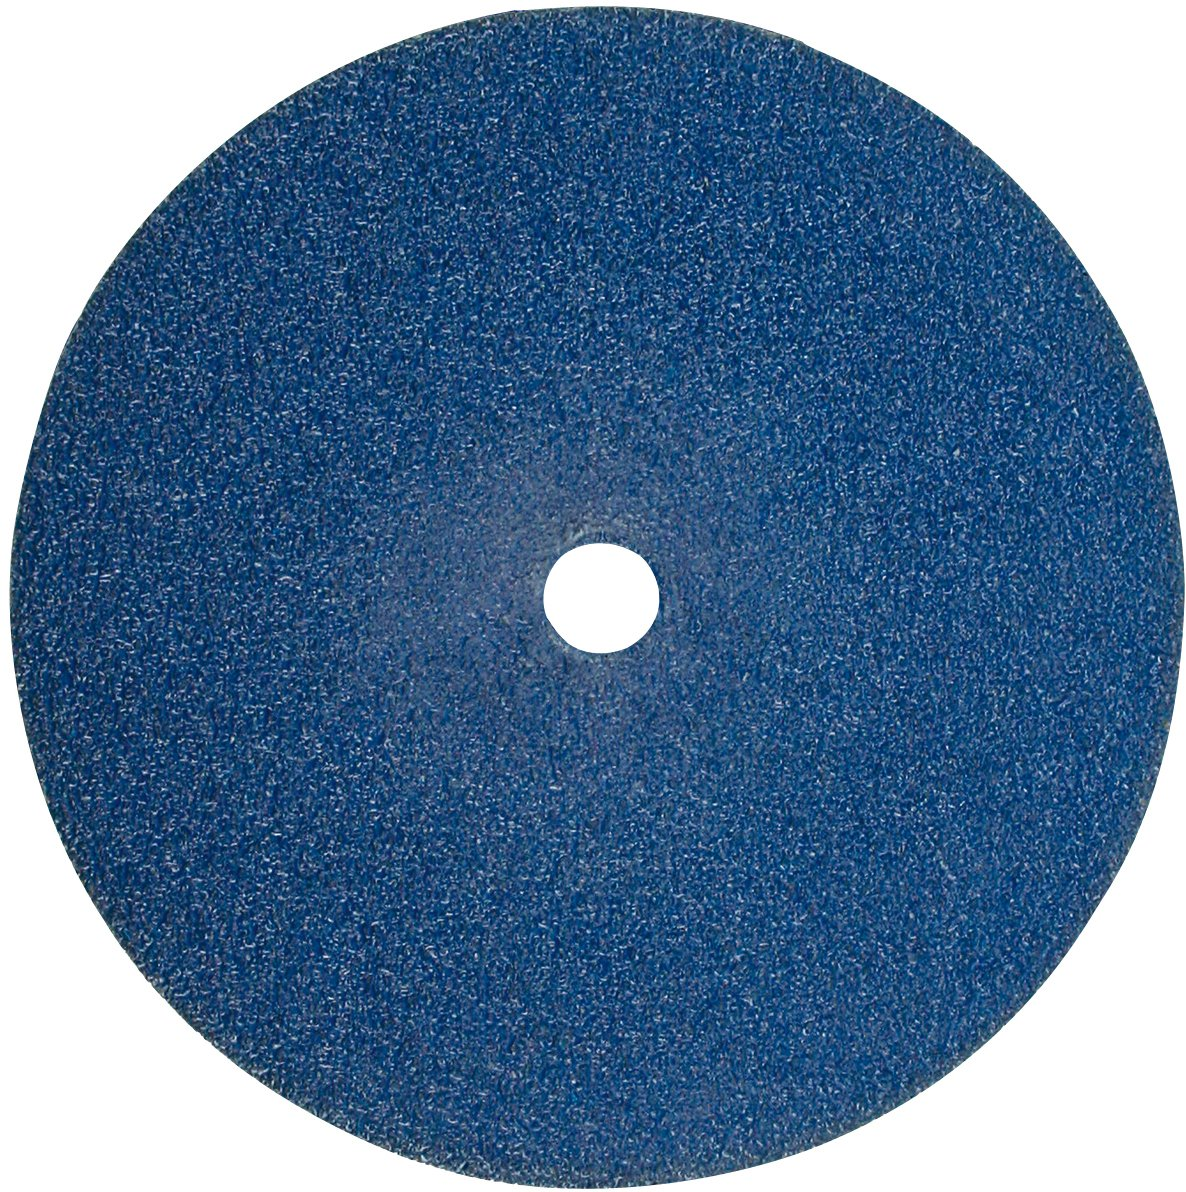 "CS Unitec 80919 FIX Disc with Hook & Loop Fasterning, Zirconium, 6"" Diameter, 120 Grit, (Pack of 50) 81%2BXCLddktL"